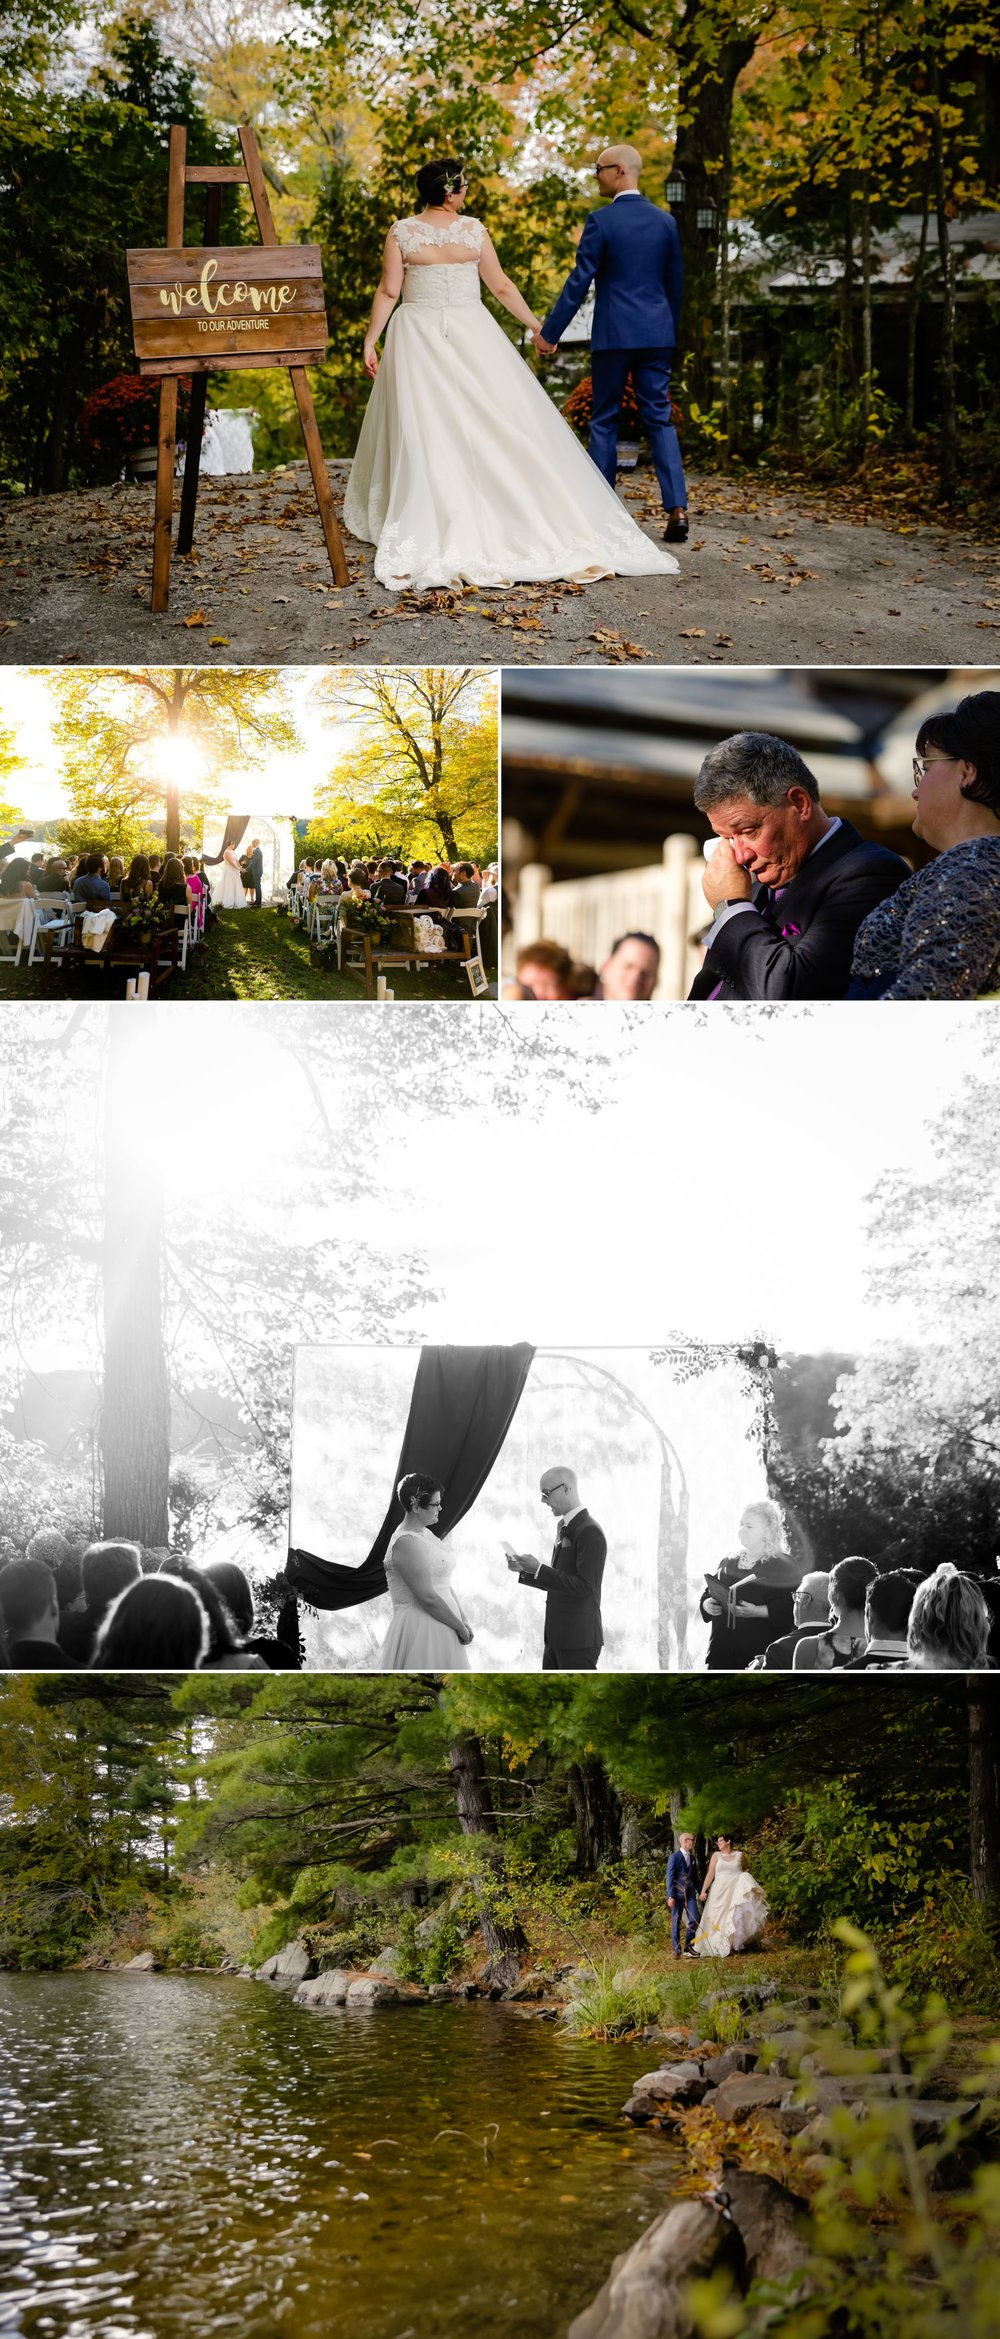 An outdoor wedding ceremony taking place in the fall at La Grange de la Gatineau